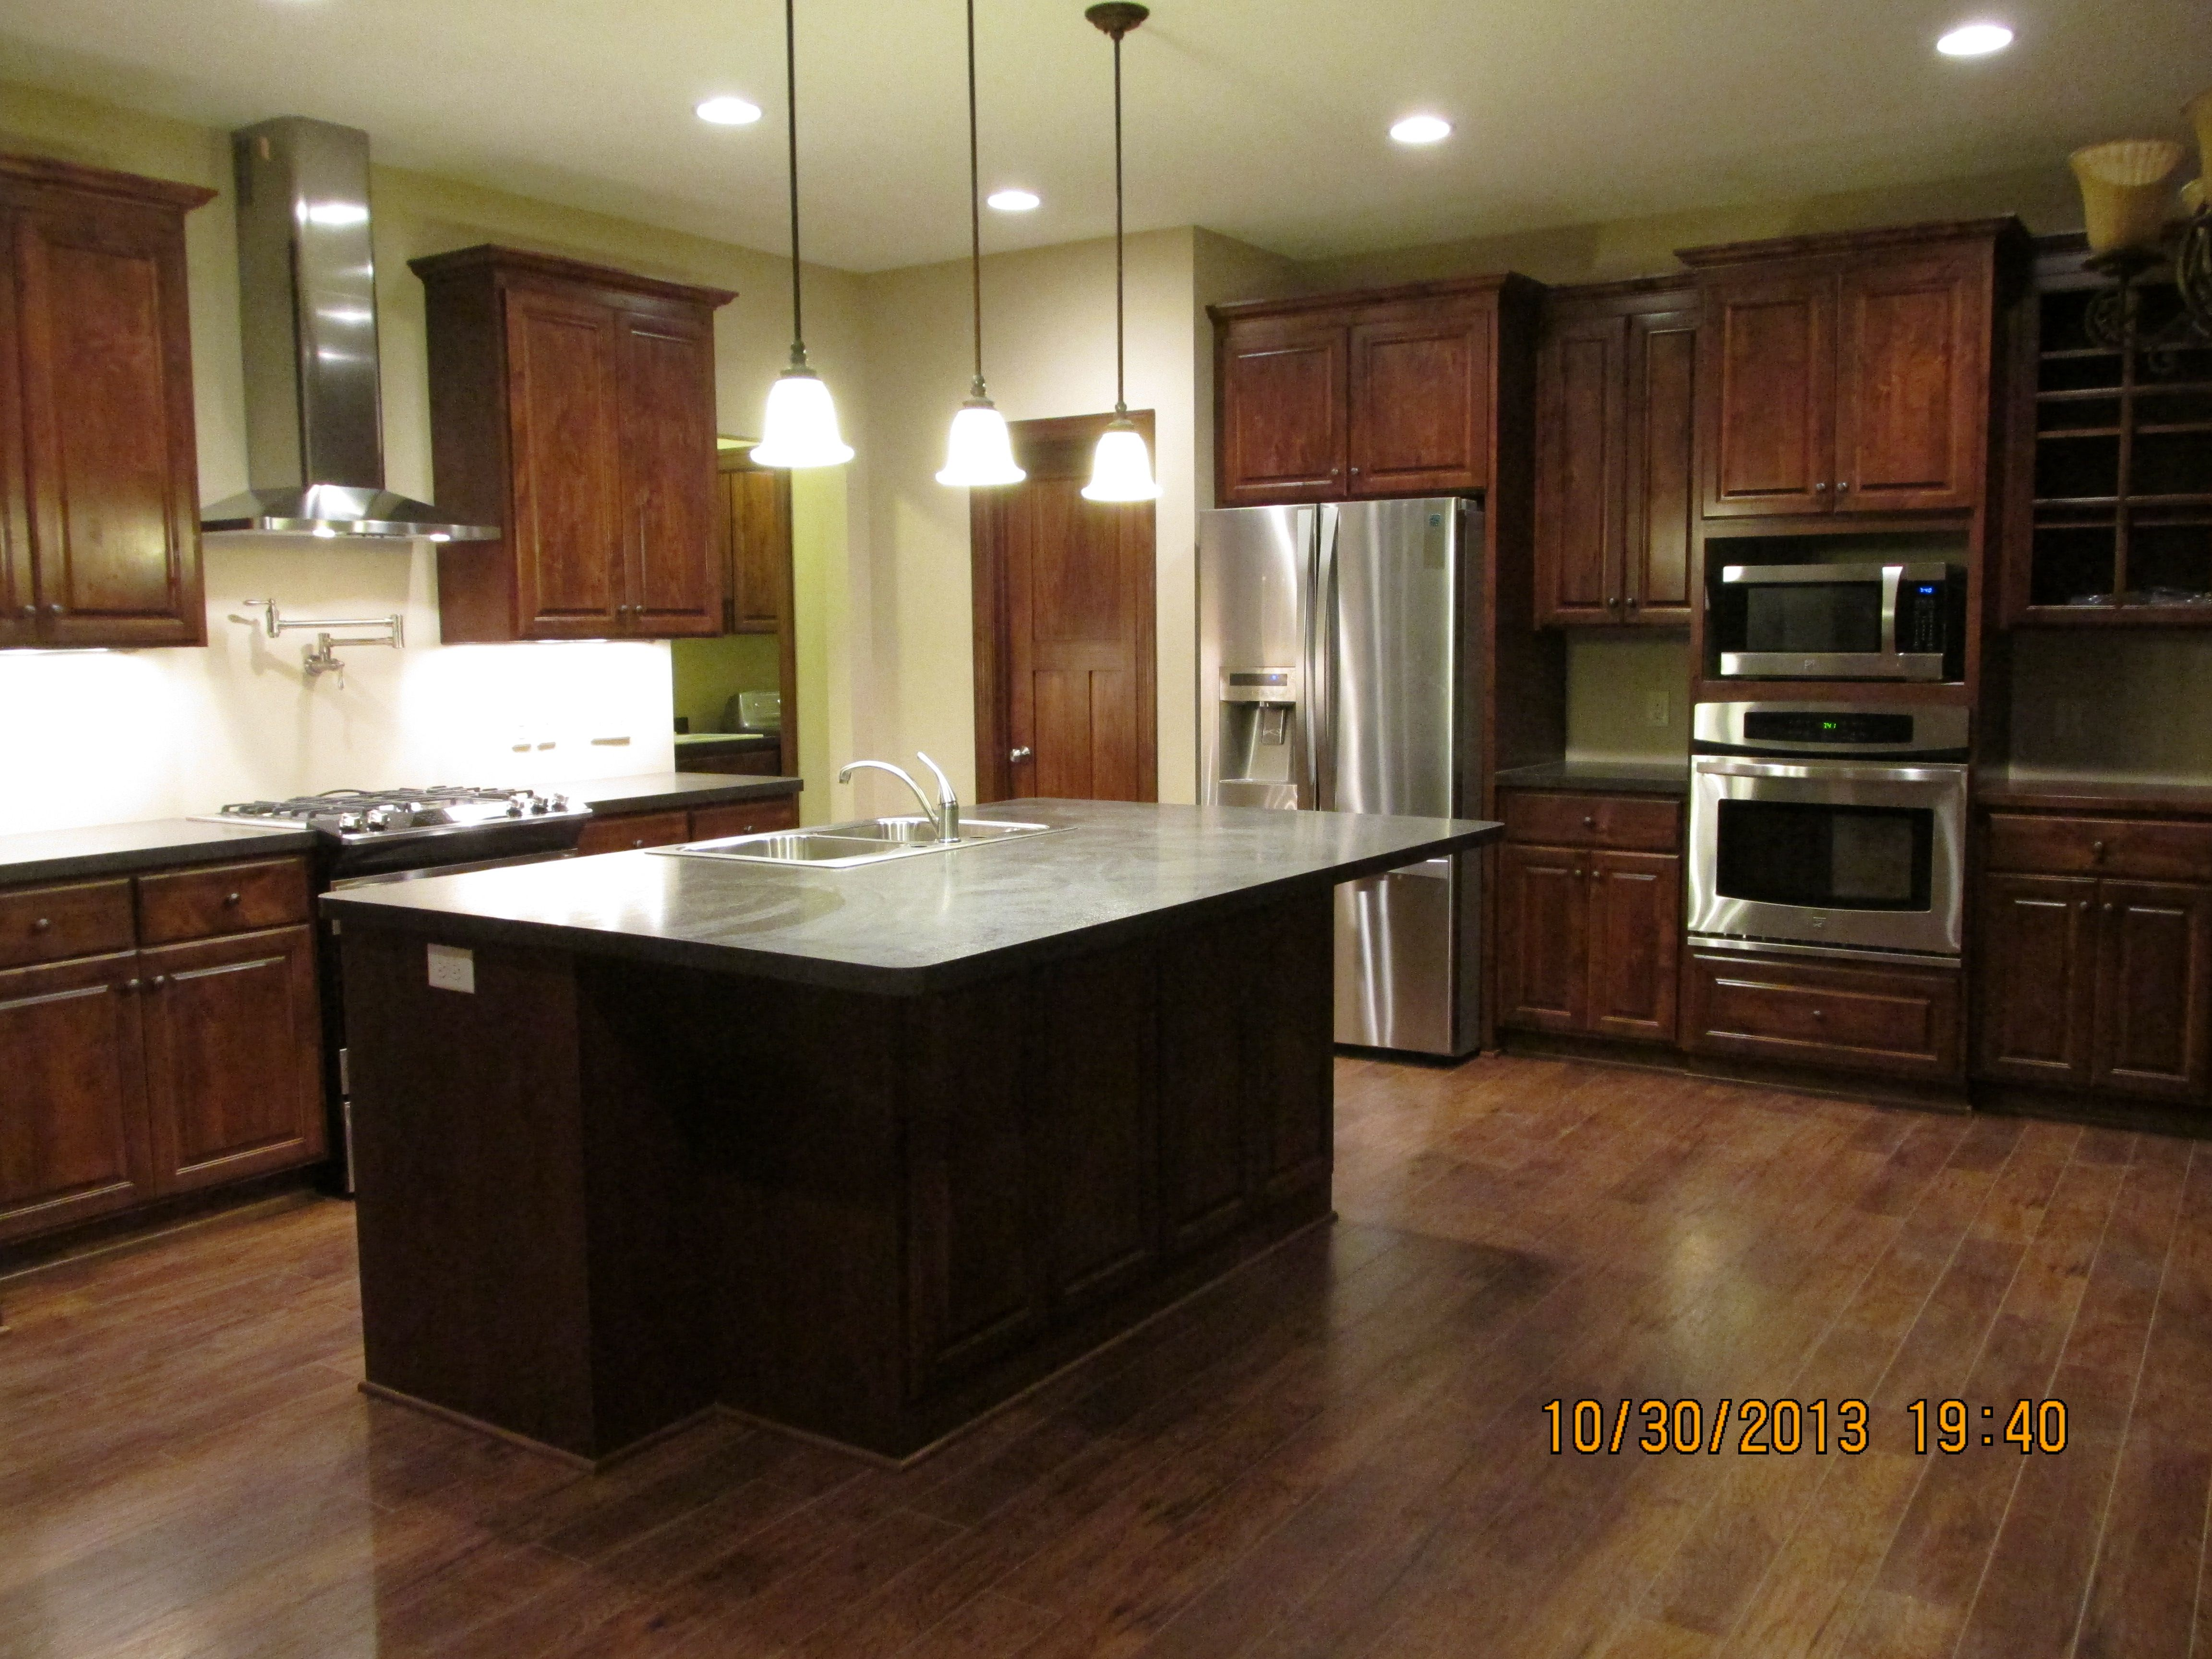 knotty alder cabinets w espresso stain popular color combination this year knotty alder on kitchen cabinets color combination id=12451